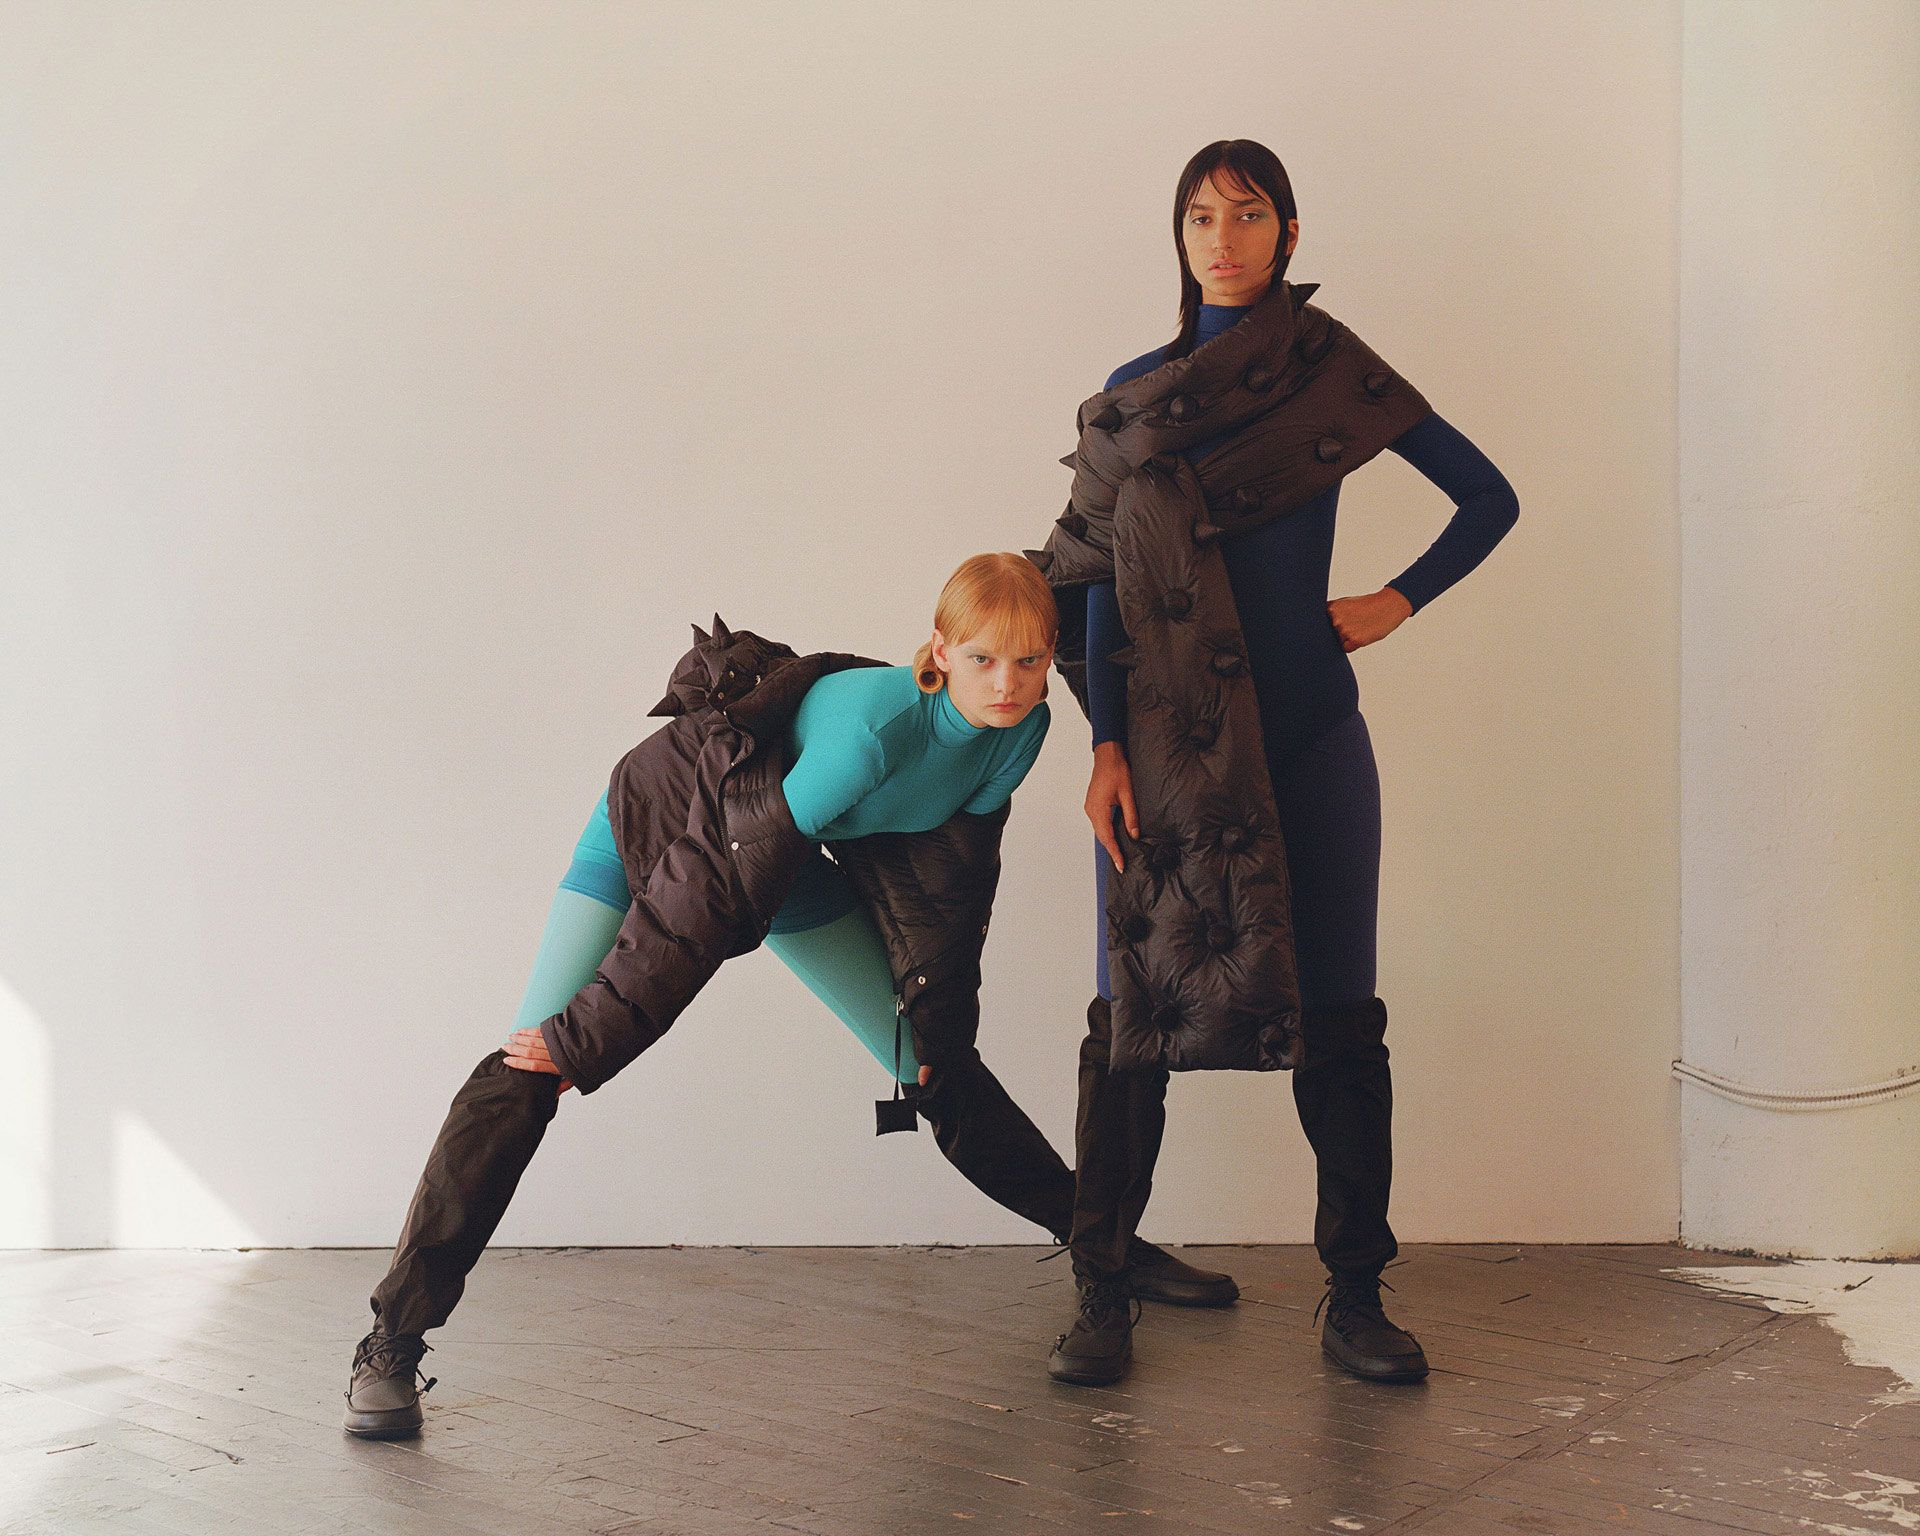 redhead female model wearing turquoise overall and black puffy spiked coat next to black haired model wearing dark blue overall and black puffy spiked scarf photographed by Oumayma B Tanfous for Moncler as a story for Document Journal magazine